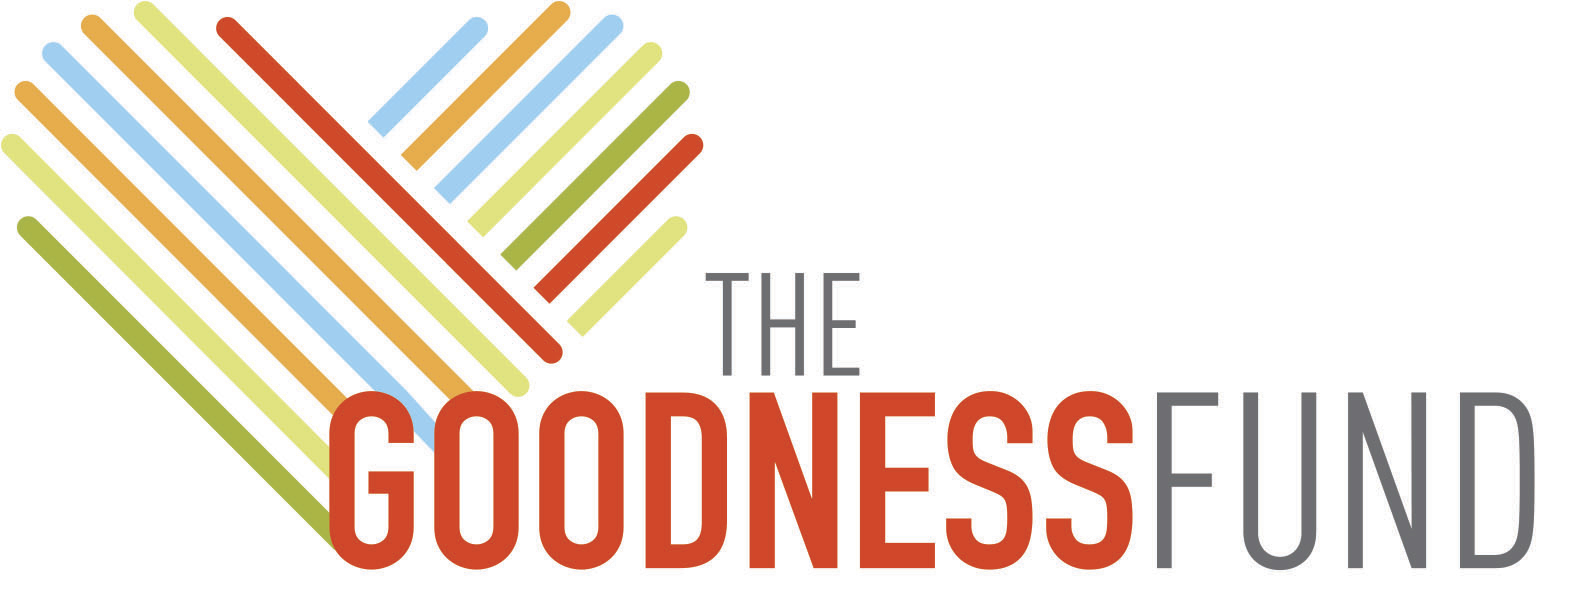 Zoës Kitchen Launches Employee Support Program - The Goodness Fund ...